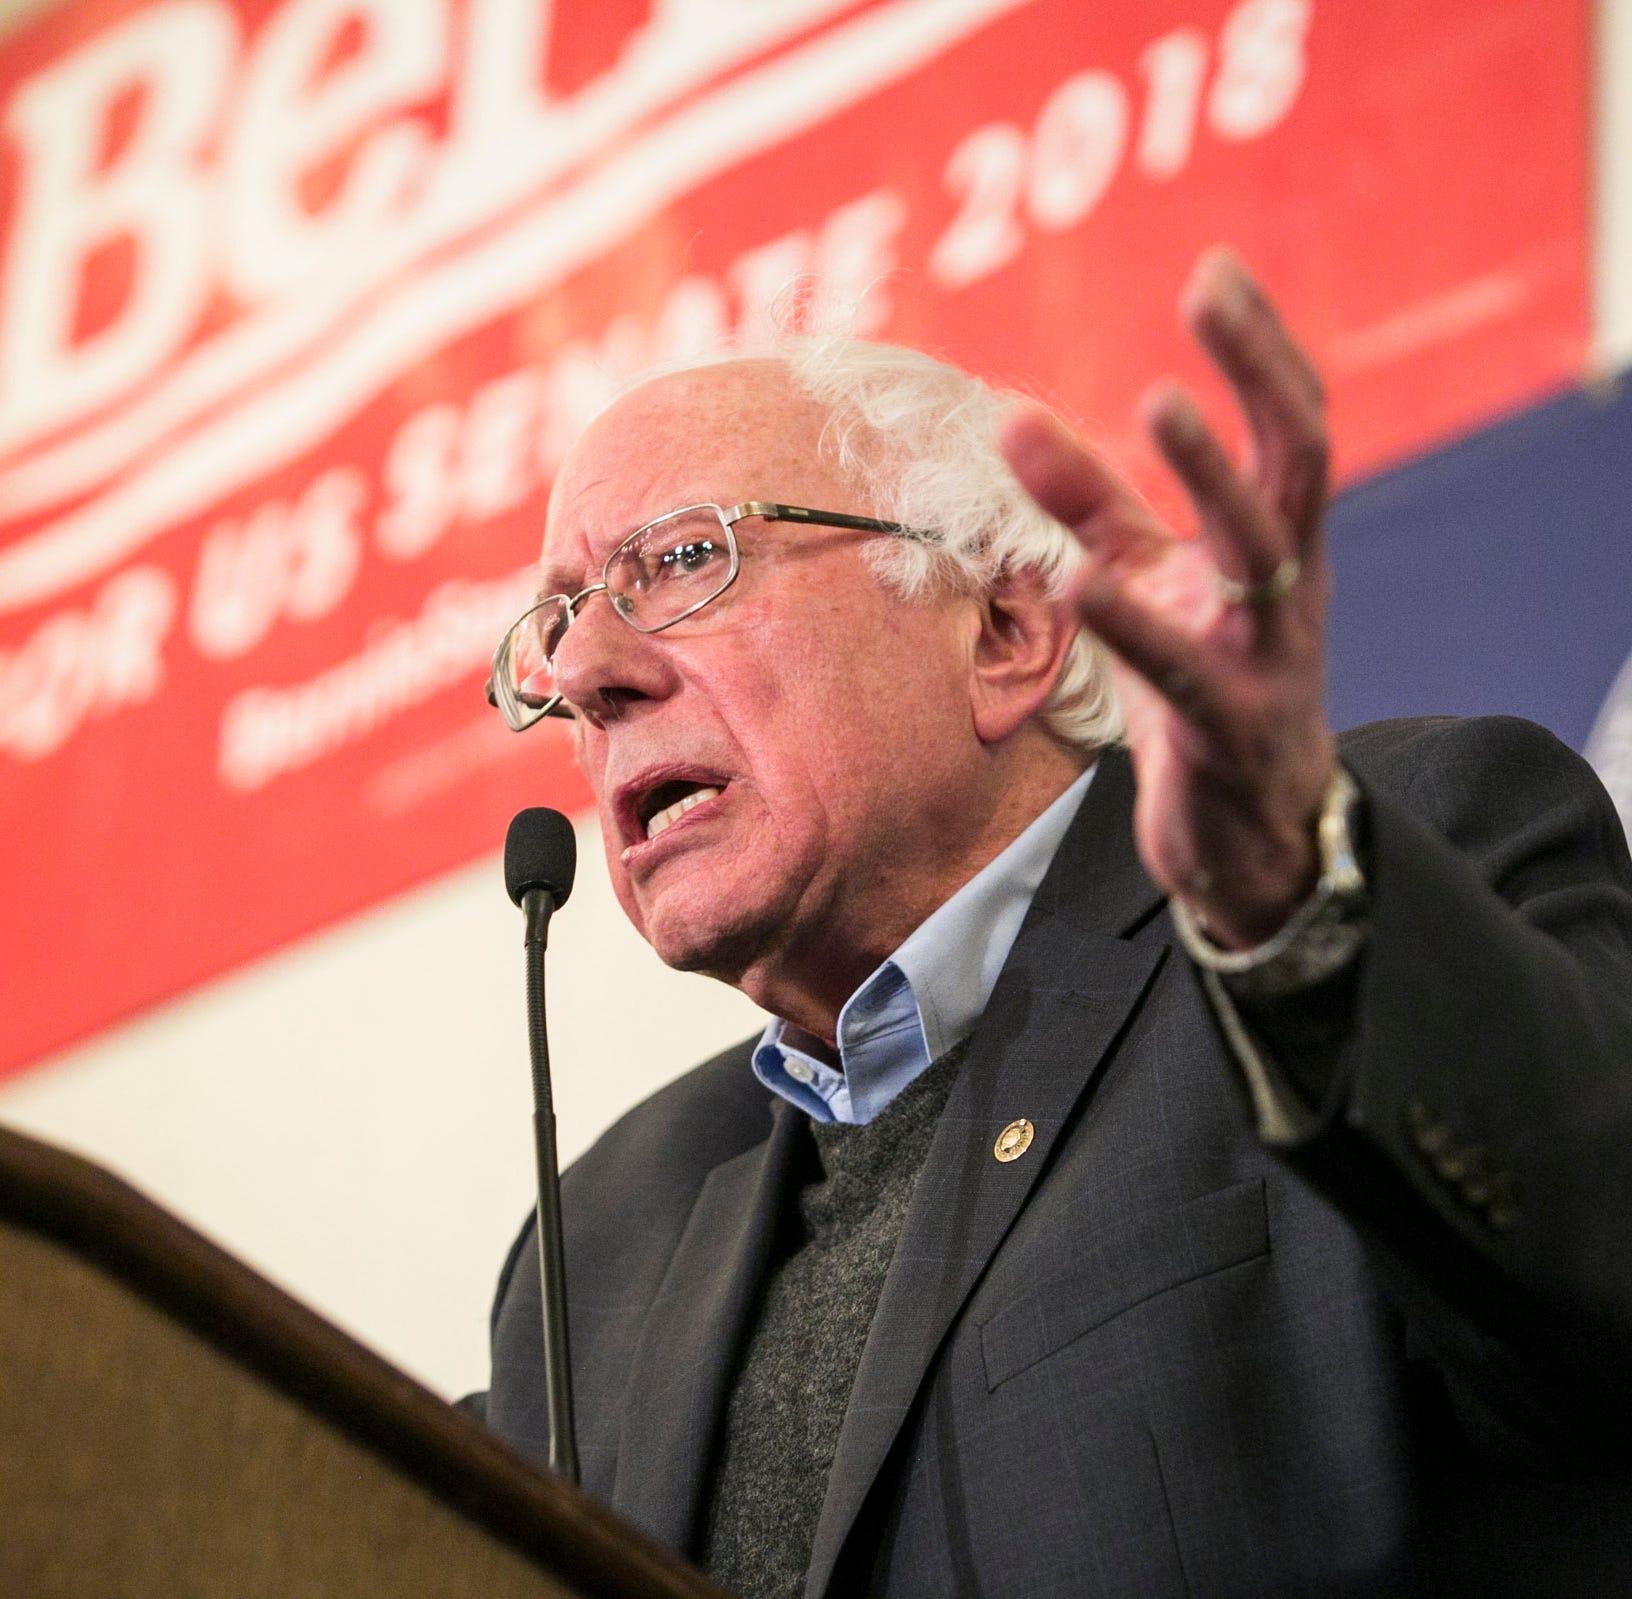 Bernie Sanders, Bill de Blasio, Cornel West and other progressives to speak in Burlington